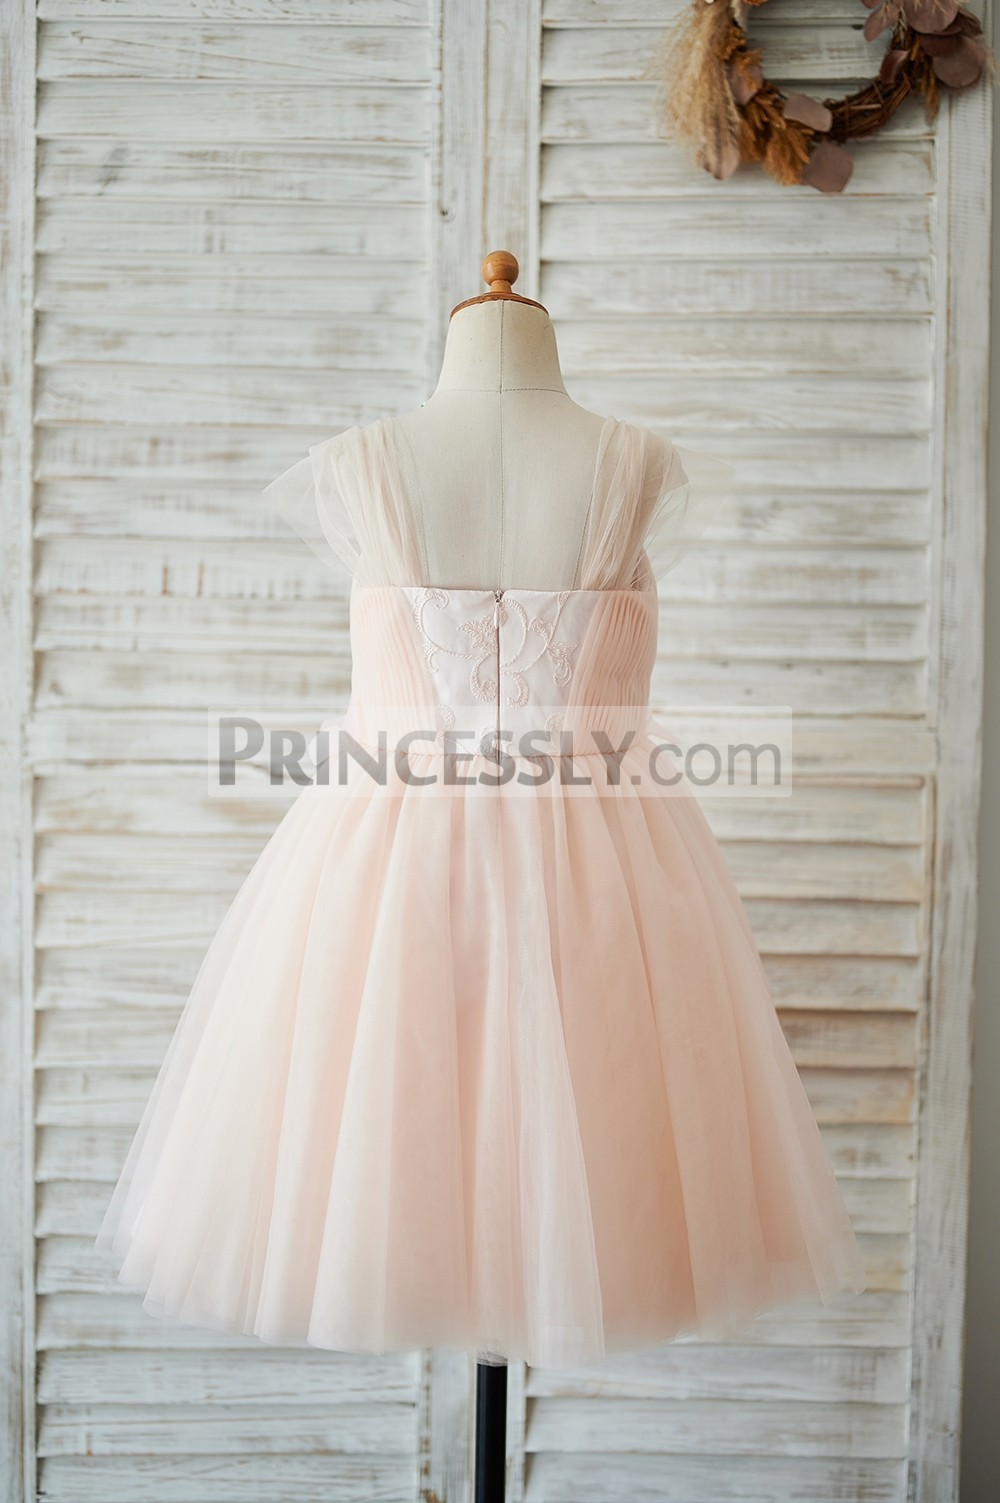 Backless tulle pink wedding baby girl dress